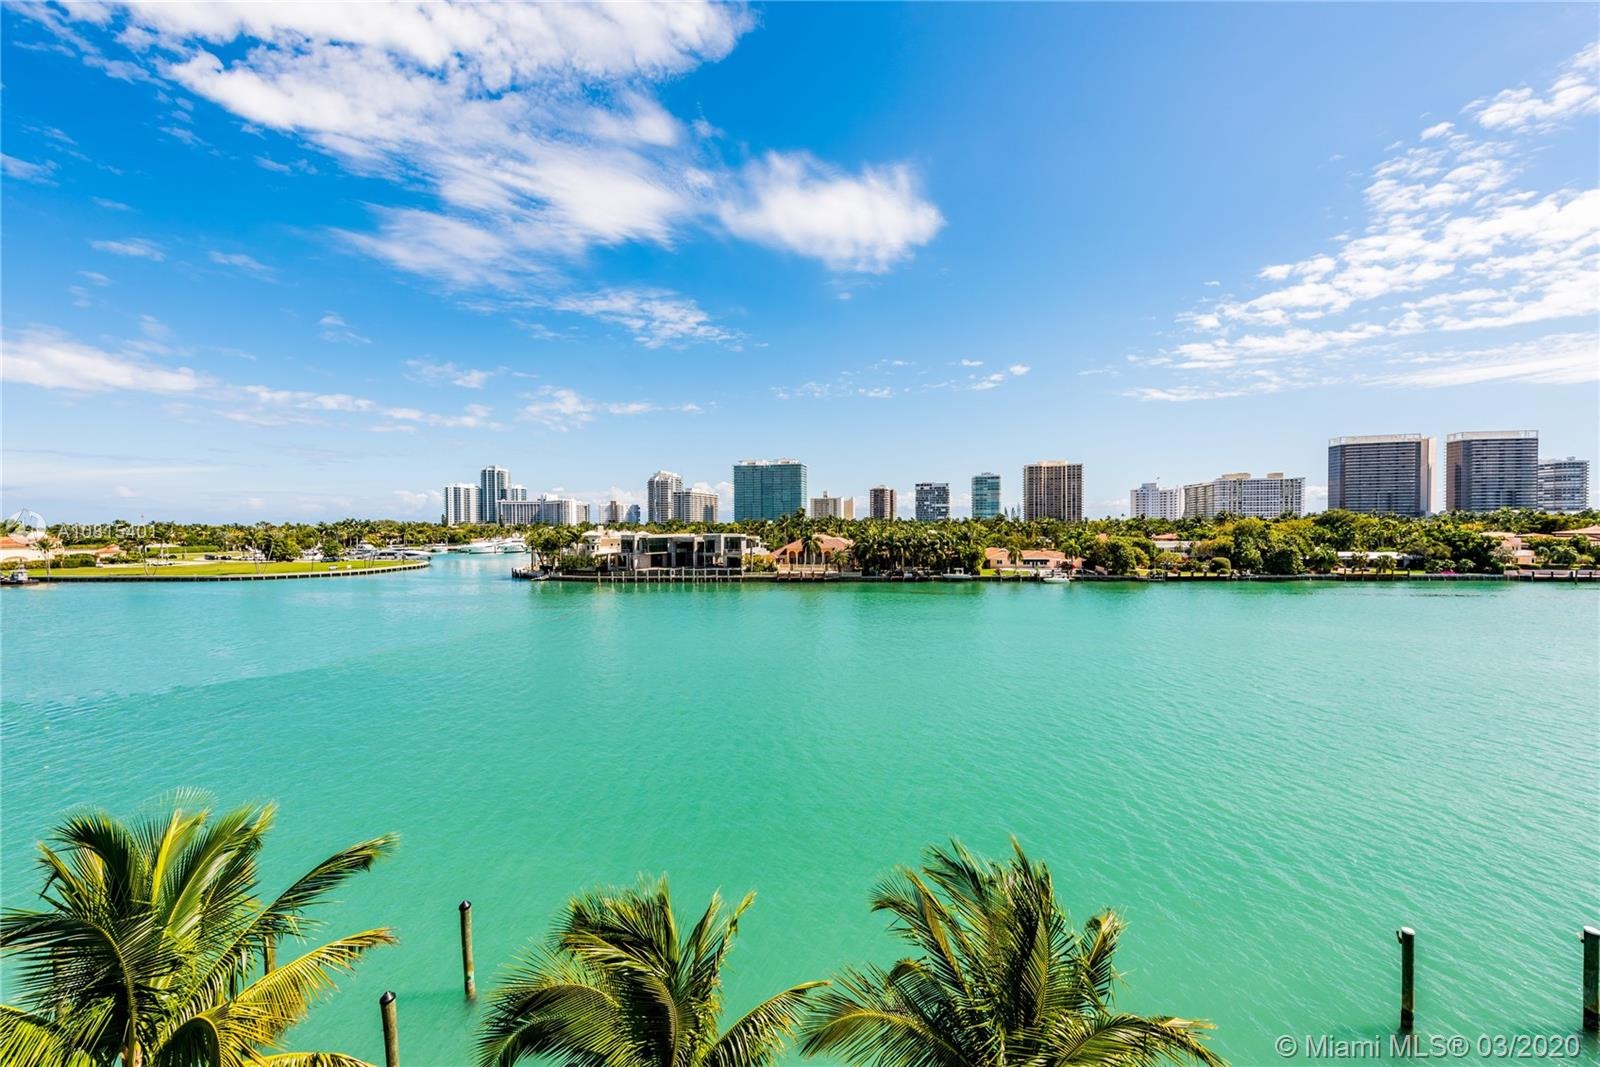 Stunning Condo with unobstructed views of the inter coast, ocean and city of Bal Harbor. Private elevator/Foyer. 4 bedrooms and 3 and a half bathrooms. Apartment has many upgrades. High end wooden and marble floors, Italian invisible doors, Sub Zero Wine storage, Sub Zero cooling drawers. Wolf induction stove cook top and Bosch refrigerator, oven and microwave. A/C has variable speeds with 5 different zones and 5 thermostats. Boutique building only 33 apartments.